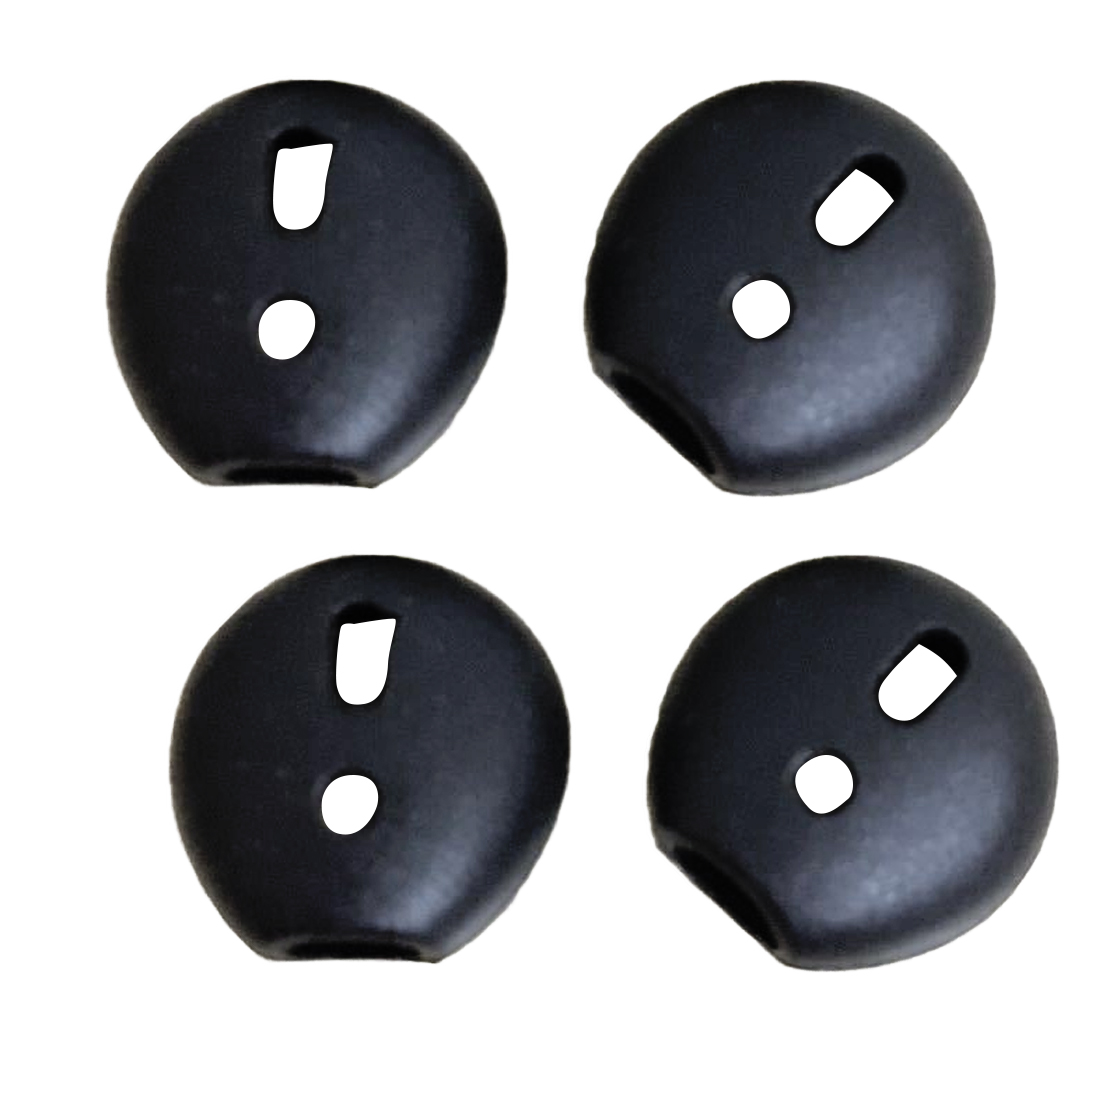 Marsnaska Pro Black 8 pcs Soft Silicone Earphone Ear Tips Ear Pads For iPhone 5 5s 6 6plus 6s 7 7plu